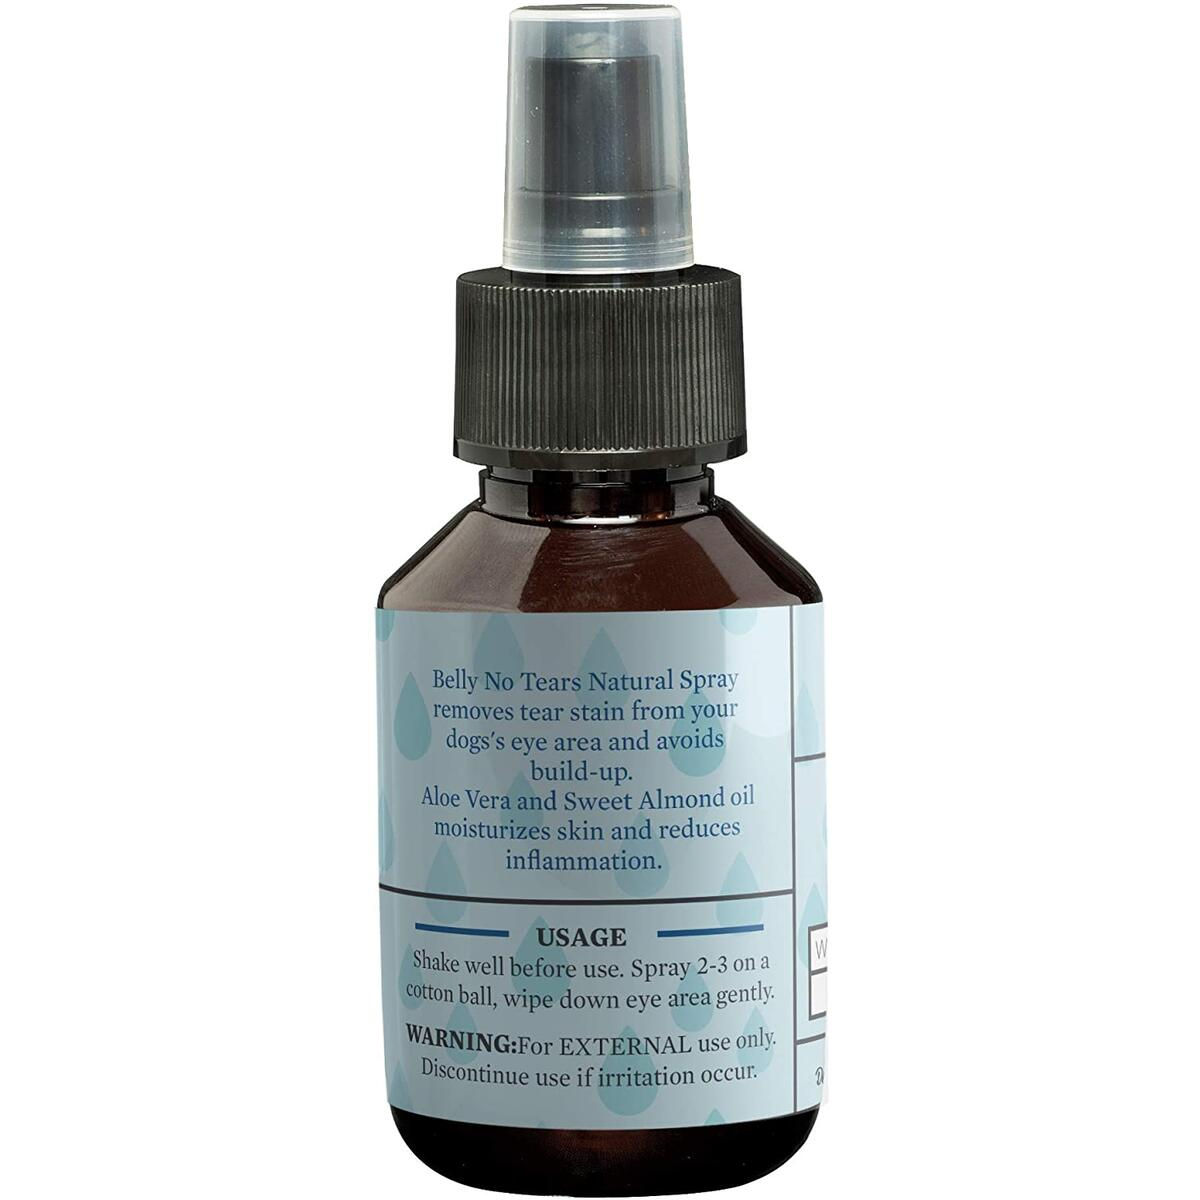 Tear Stain Remover for Dogs I 100% Natural I Removes Dog Tear Stains with Aloe Vera and Sweet Almond Oil I Moisturizes and Soothes Skin I Made with Natural Ingredients and No Chemicals